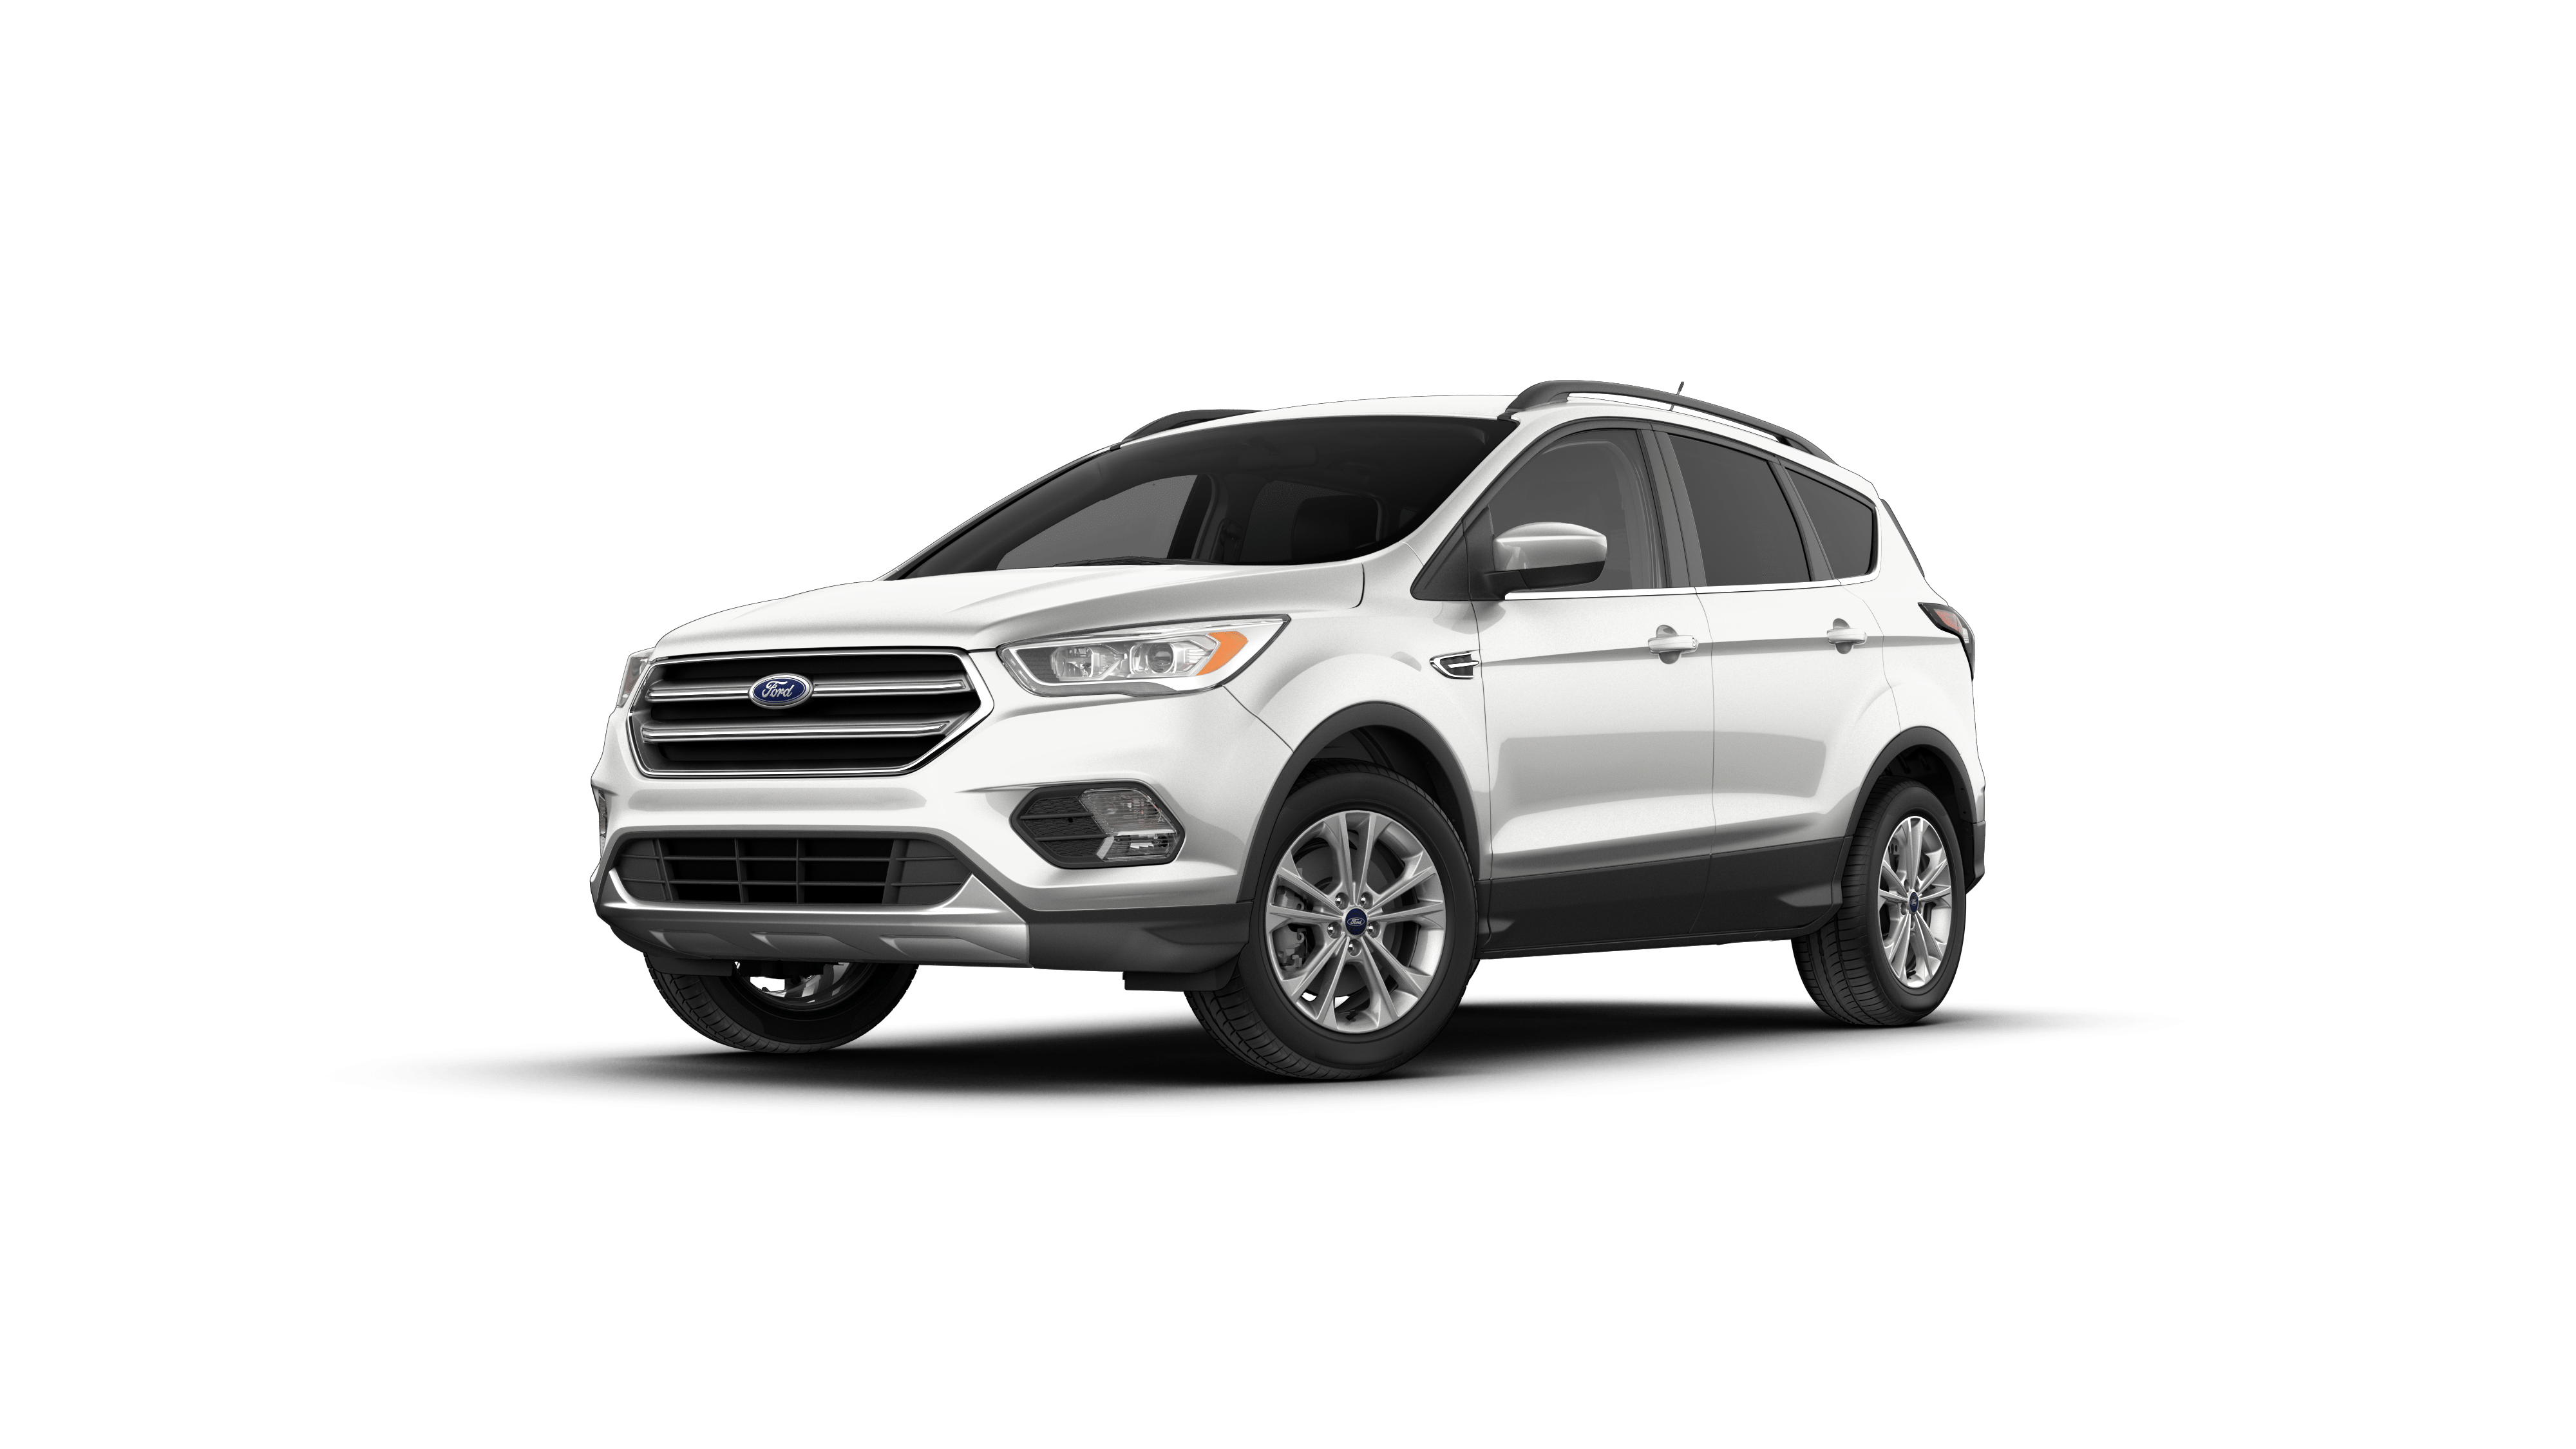 xlt suv motor and suvs angular reviews cars ford rating trend front expedition en canada